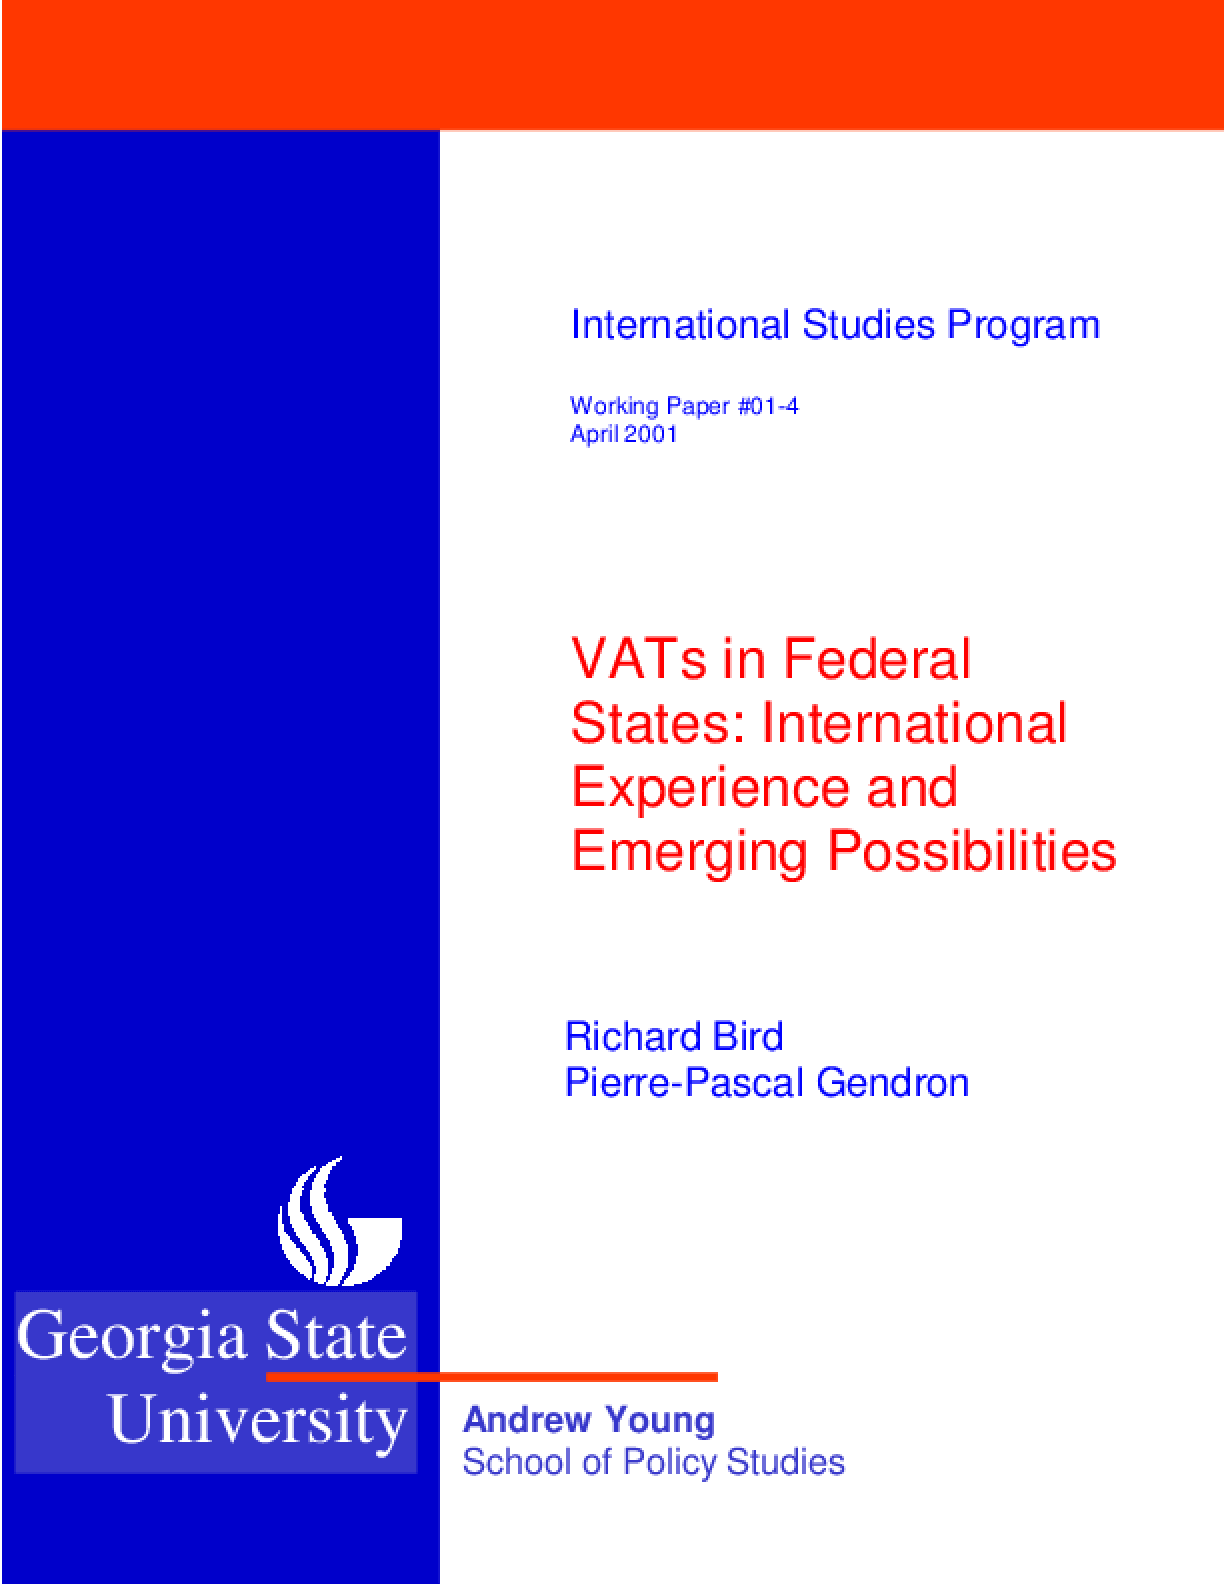 VATs in Federal States: Experiences and Emerging Possibilities